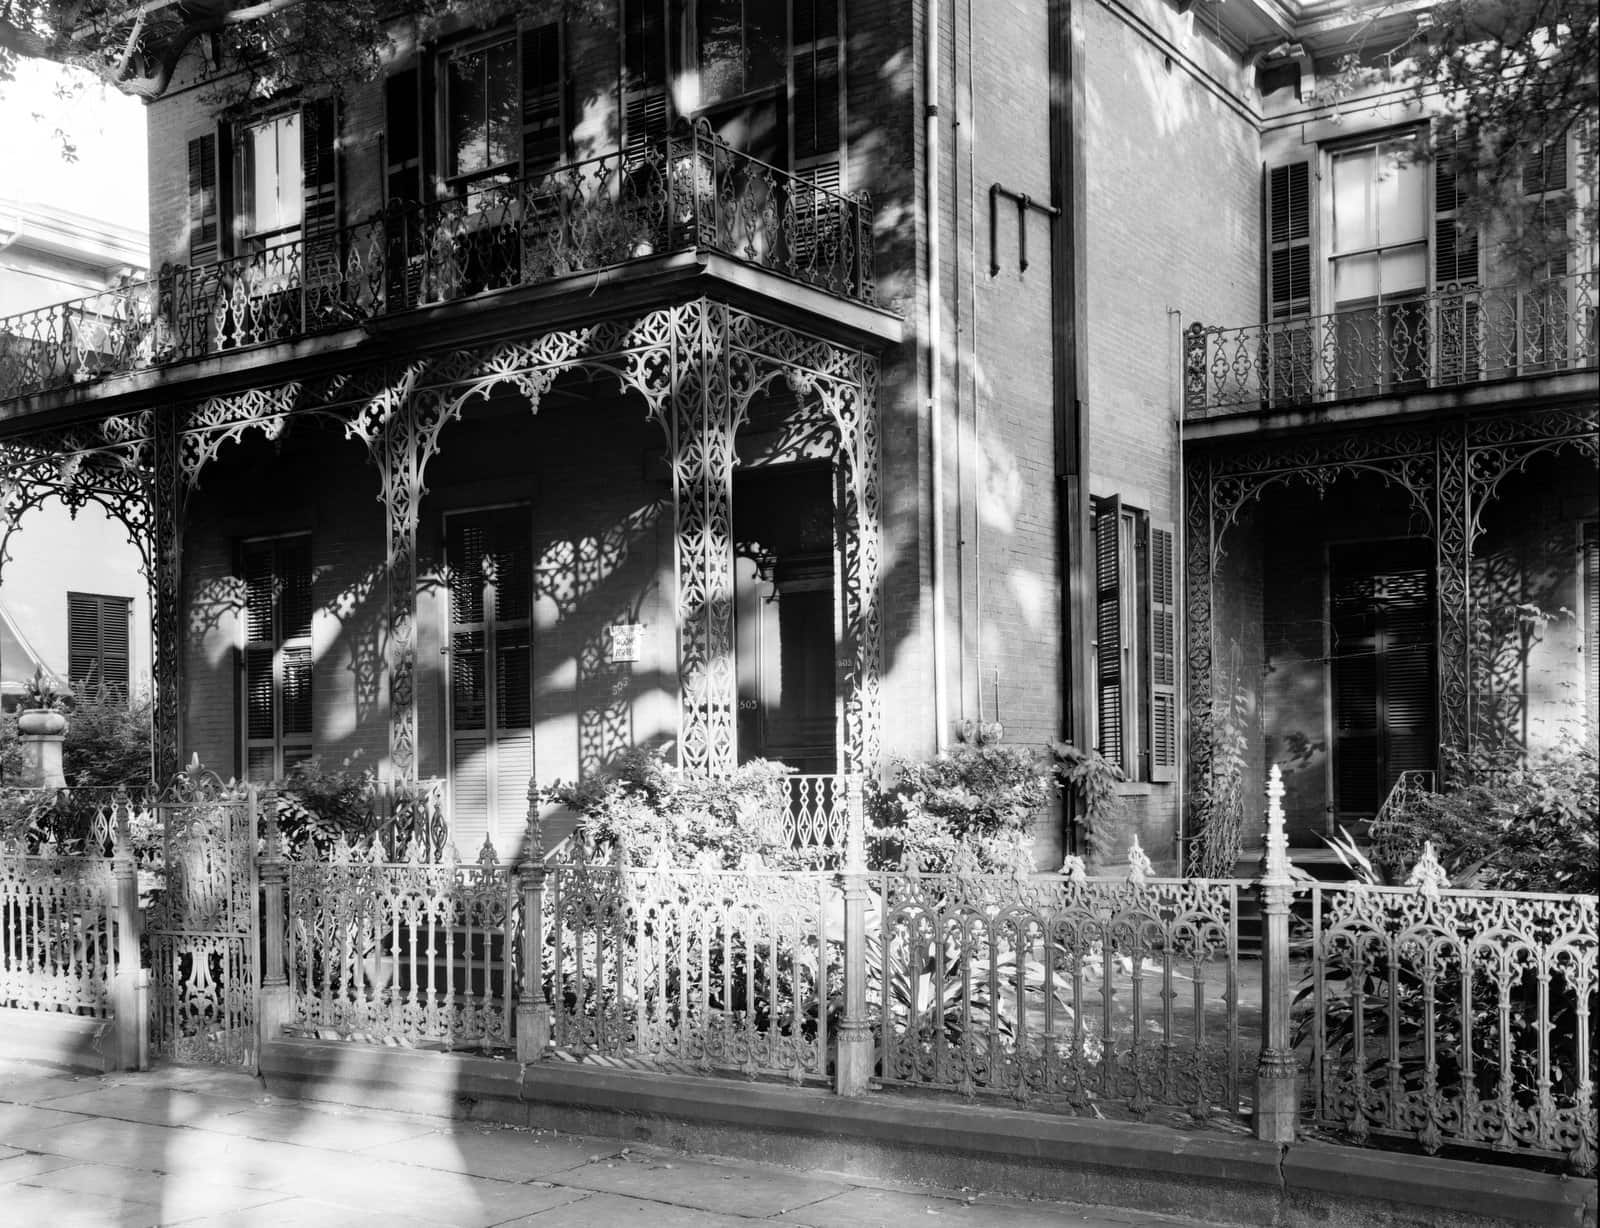 Old Southern wrought-iron balcony at Maury Gate, Carter House, Mobile, Alabama (1939)